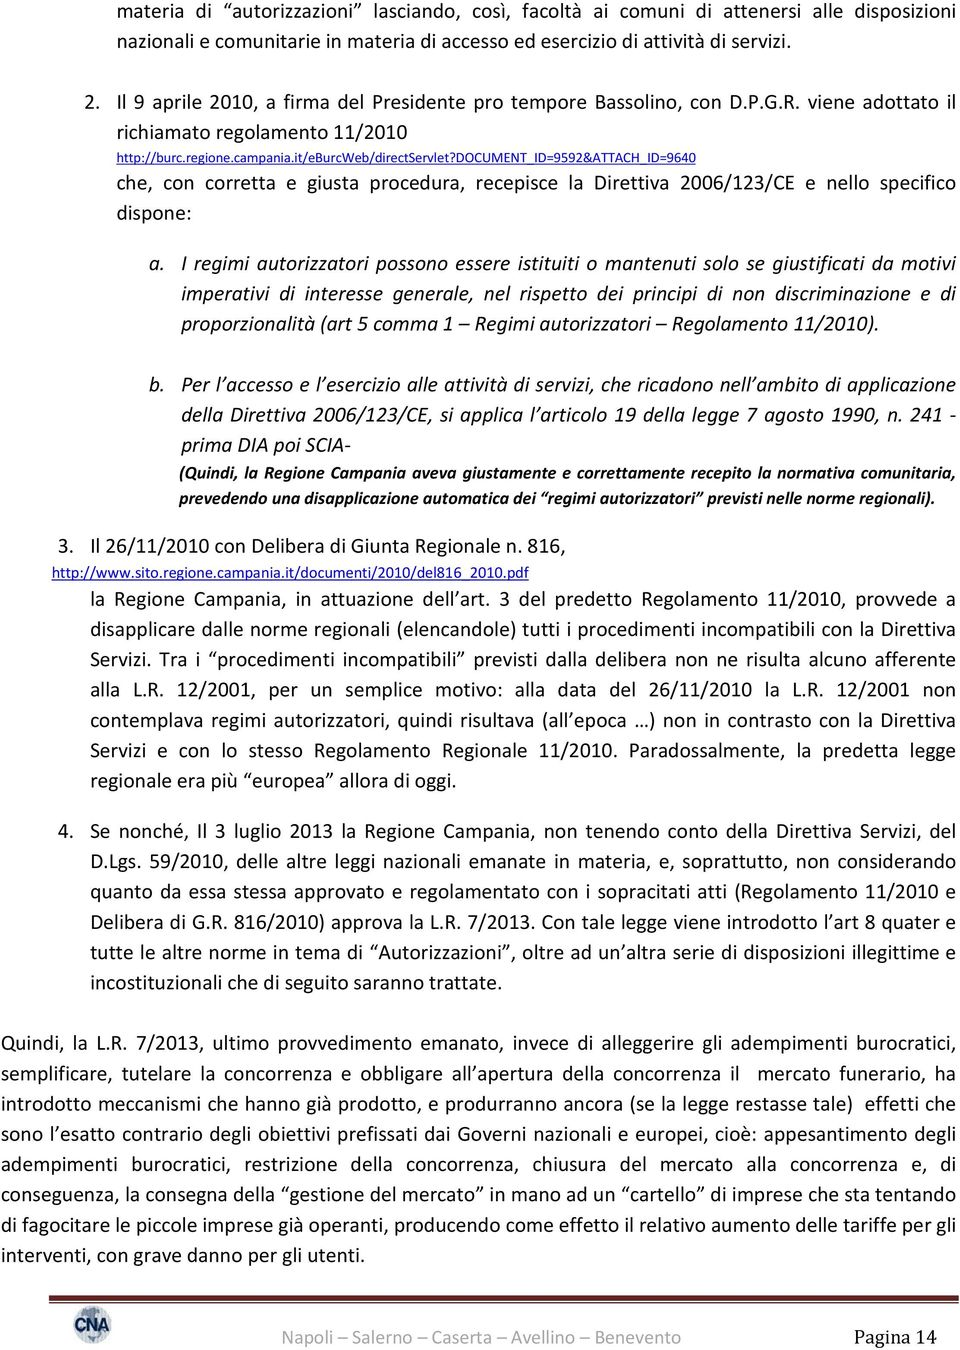 document_id=9592&attach_id=9640 che, con corretta e giusta procedura, recepisce la Direttiva 2006/123/CE e nello specifico dispone: a.